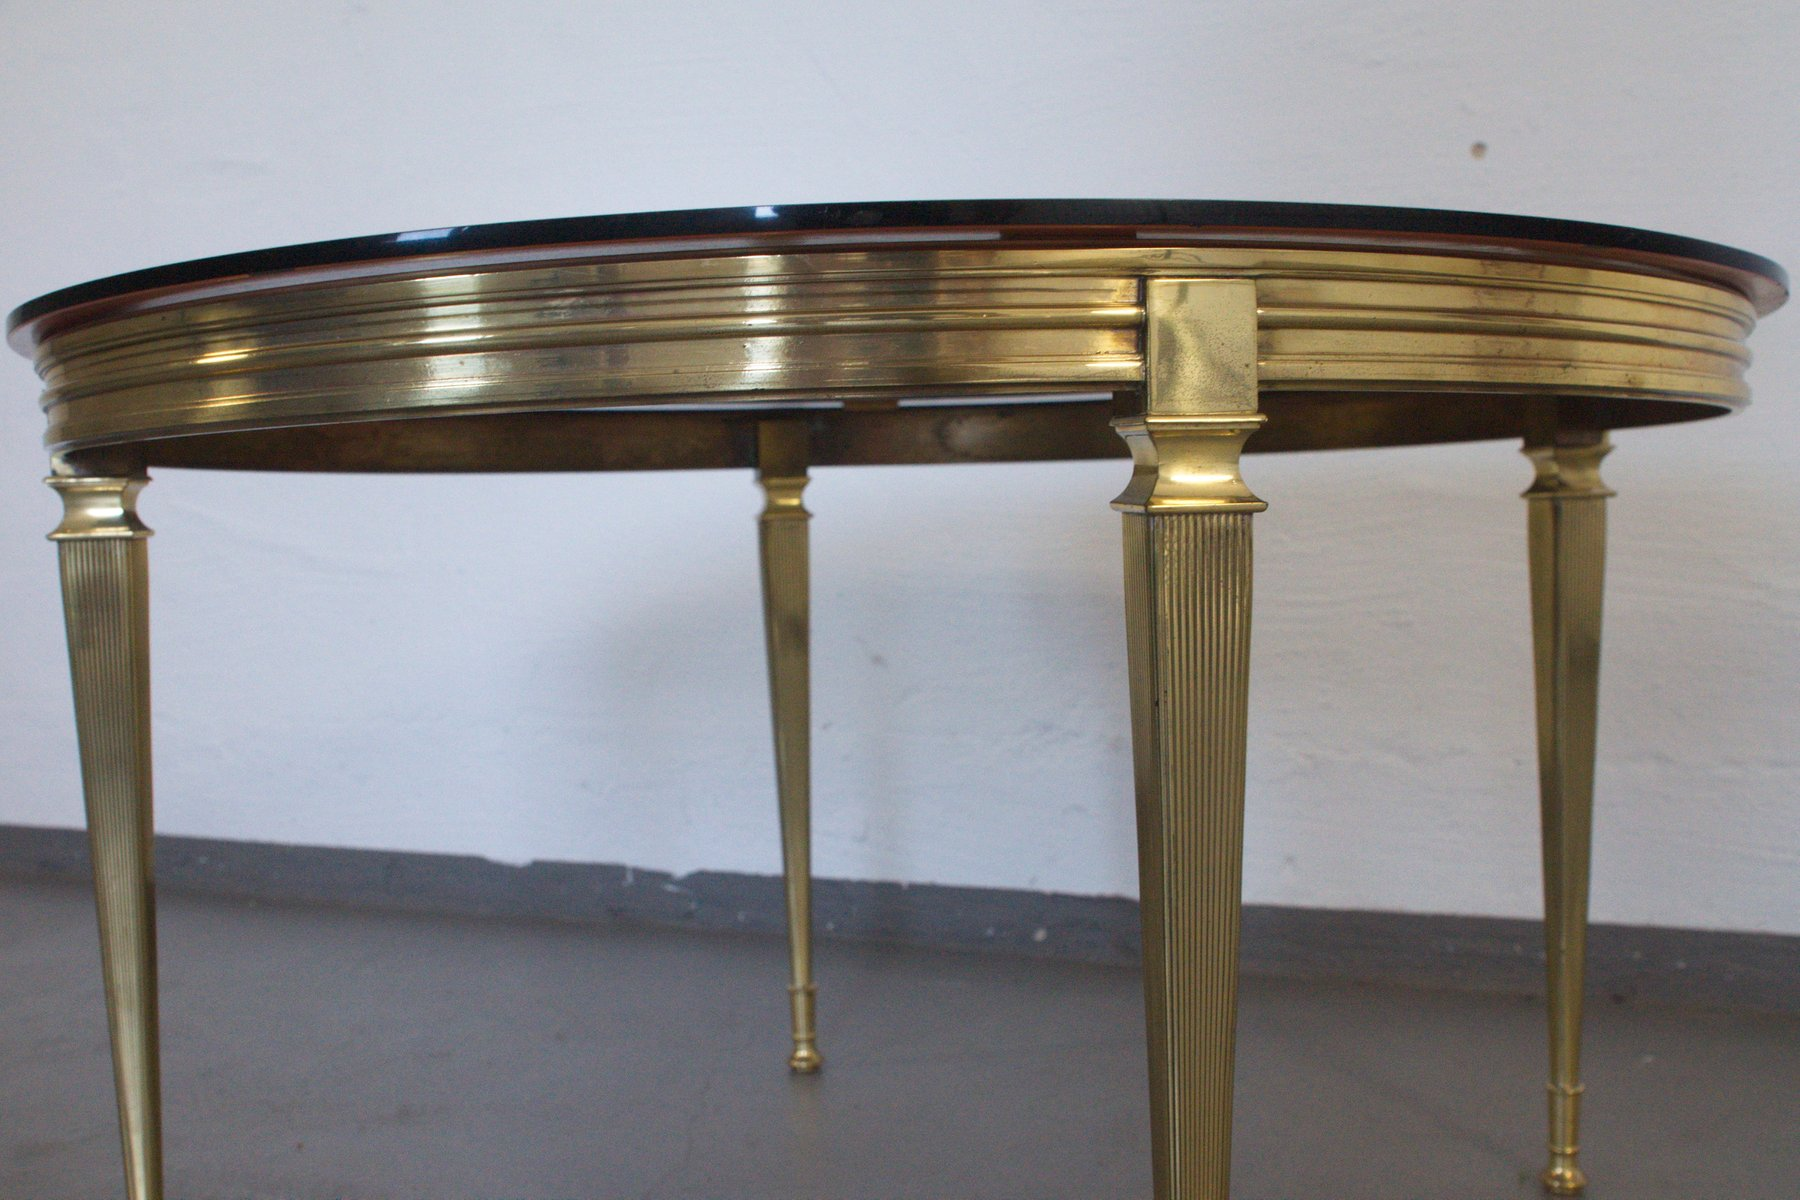 Vintage Italian Brass & Glass Coffee Table 1960s for sale at Pamono